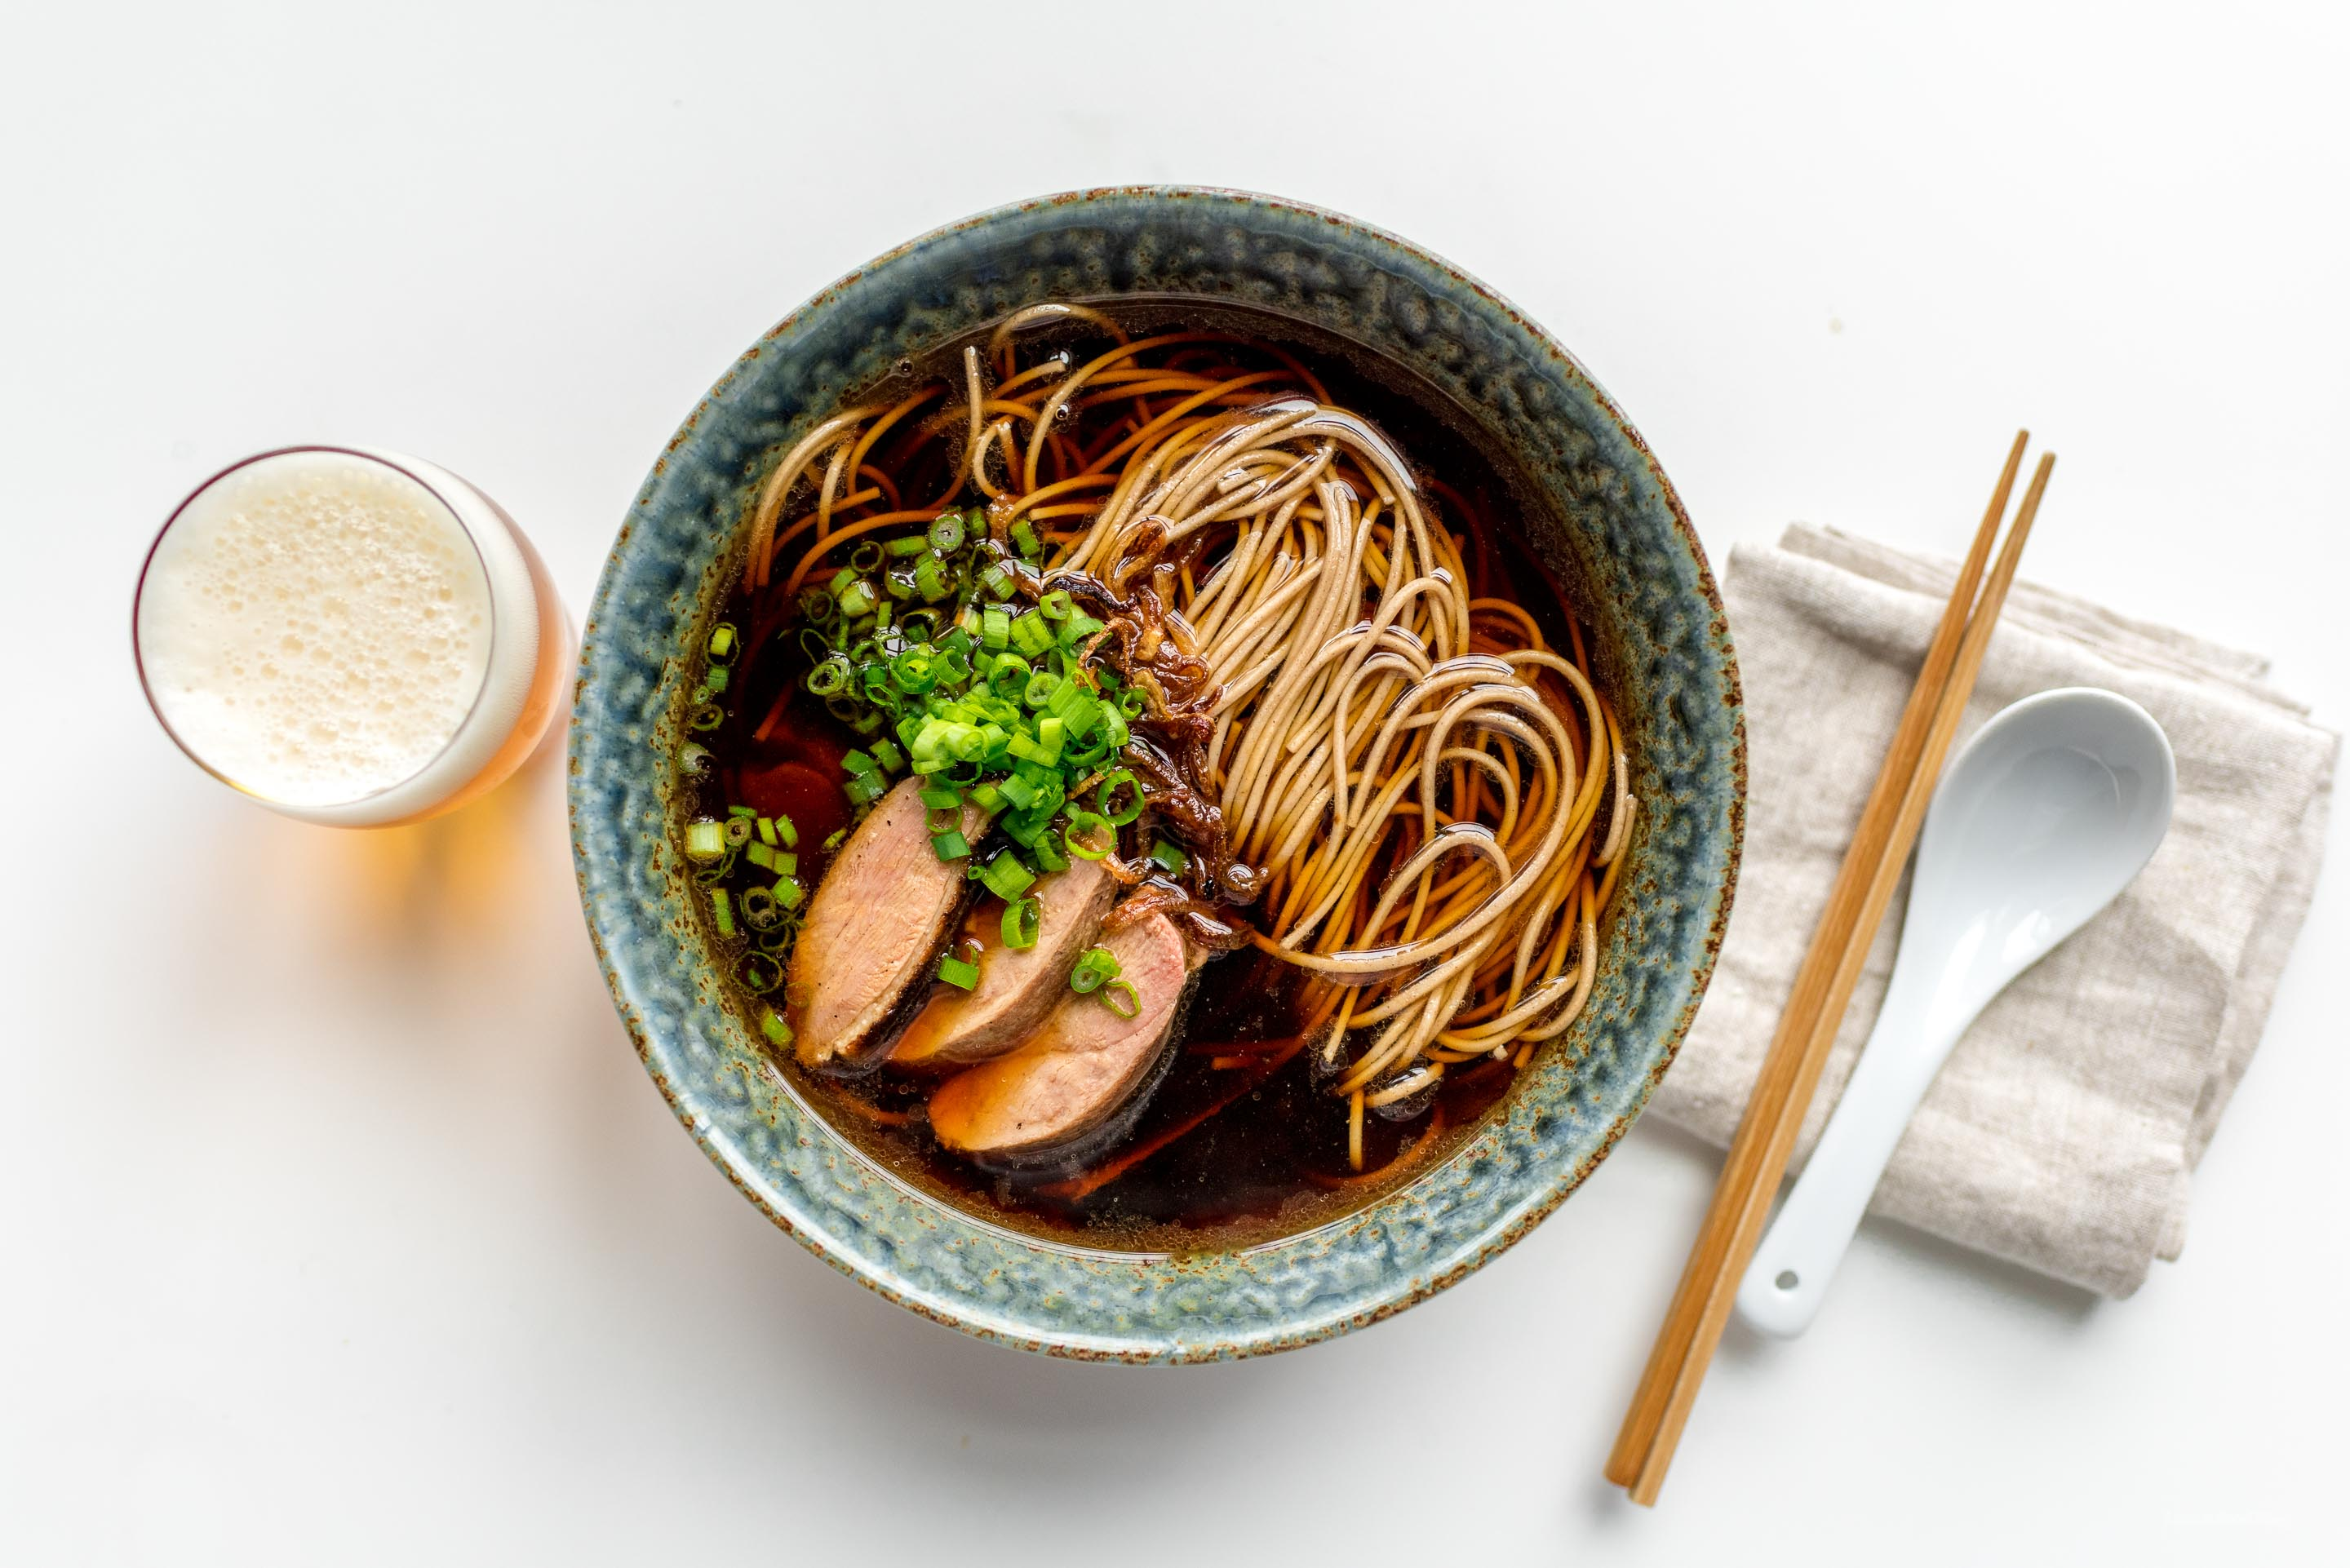 Japanese sous vide duck ramen recipe i am a food blog i am a food blog how do you feel about all the latest new cooking toys like instant pot or sous vide steph and i first got an immersion circulator way back in 2014 forumfinder Image collections